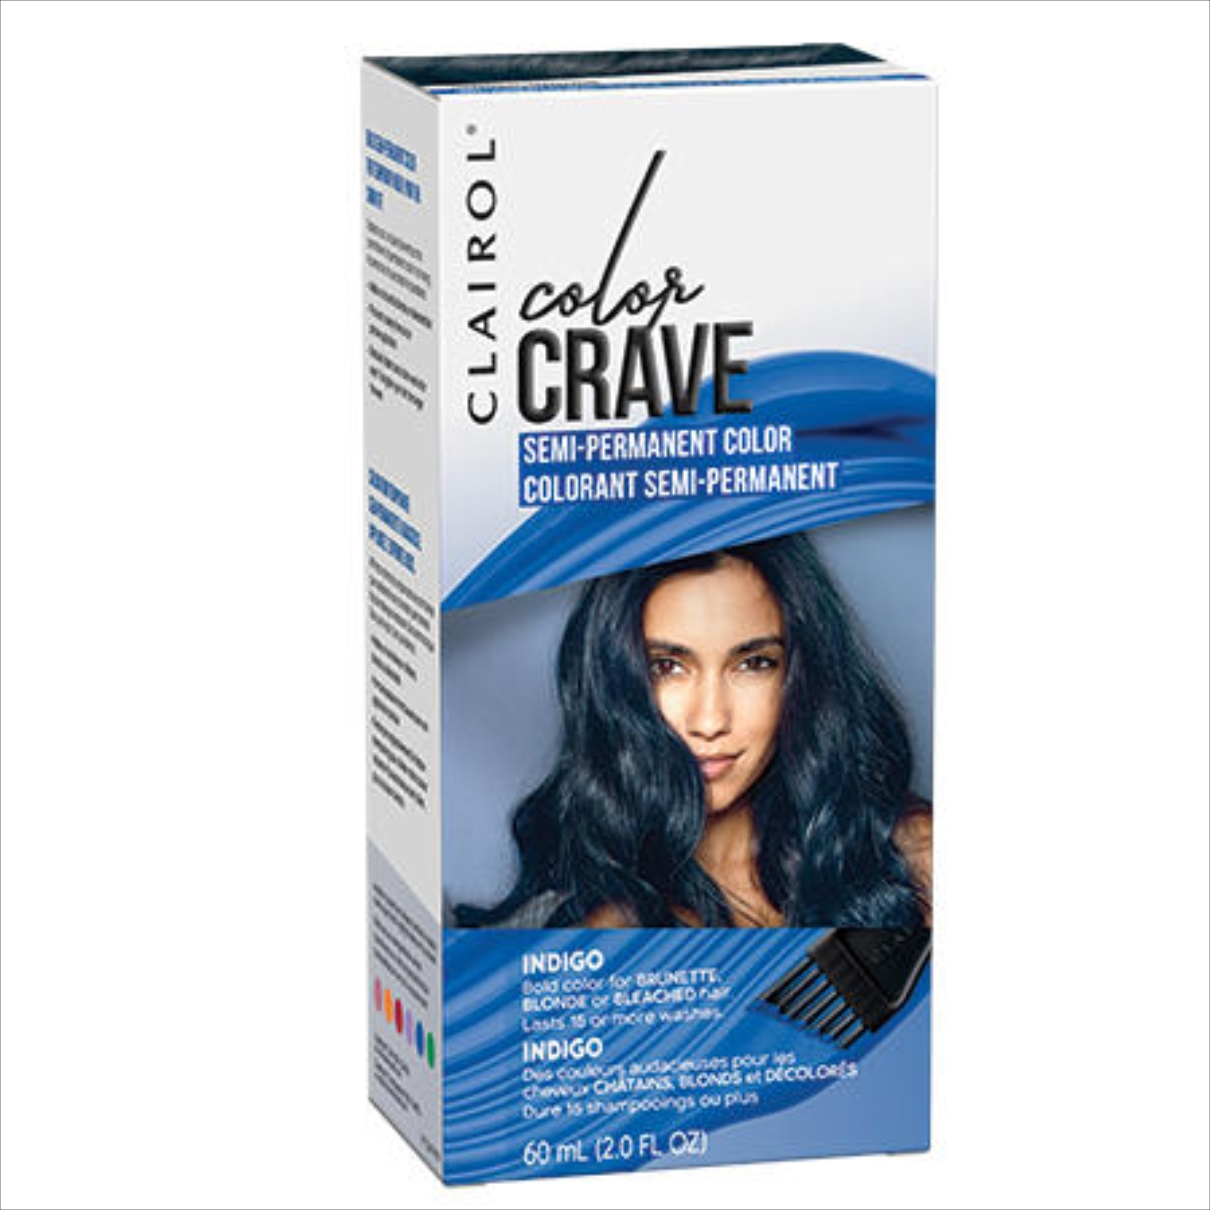 Color Crave Clairol